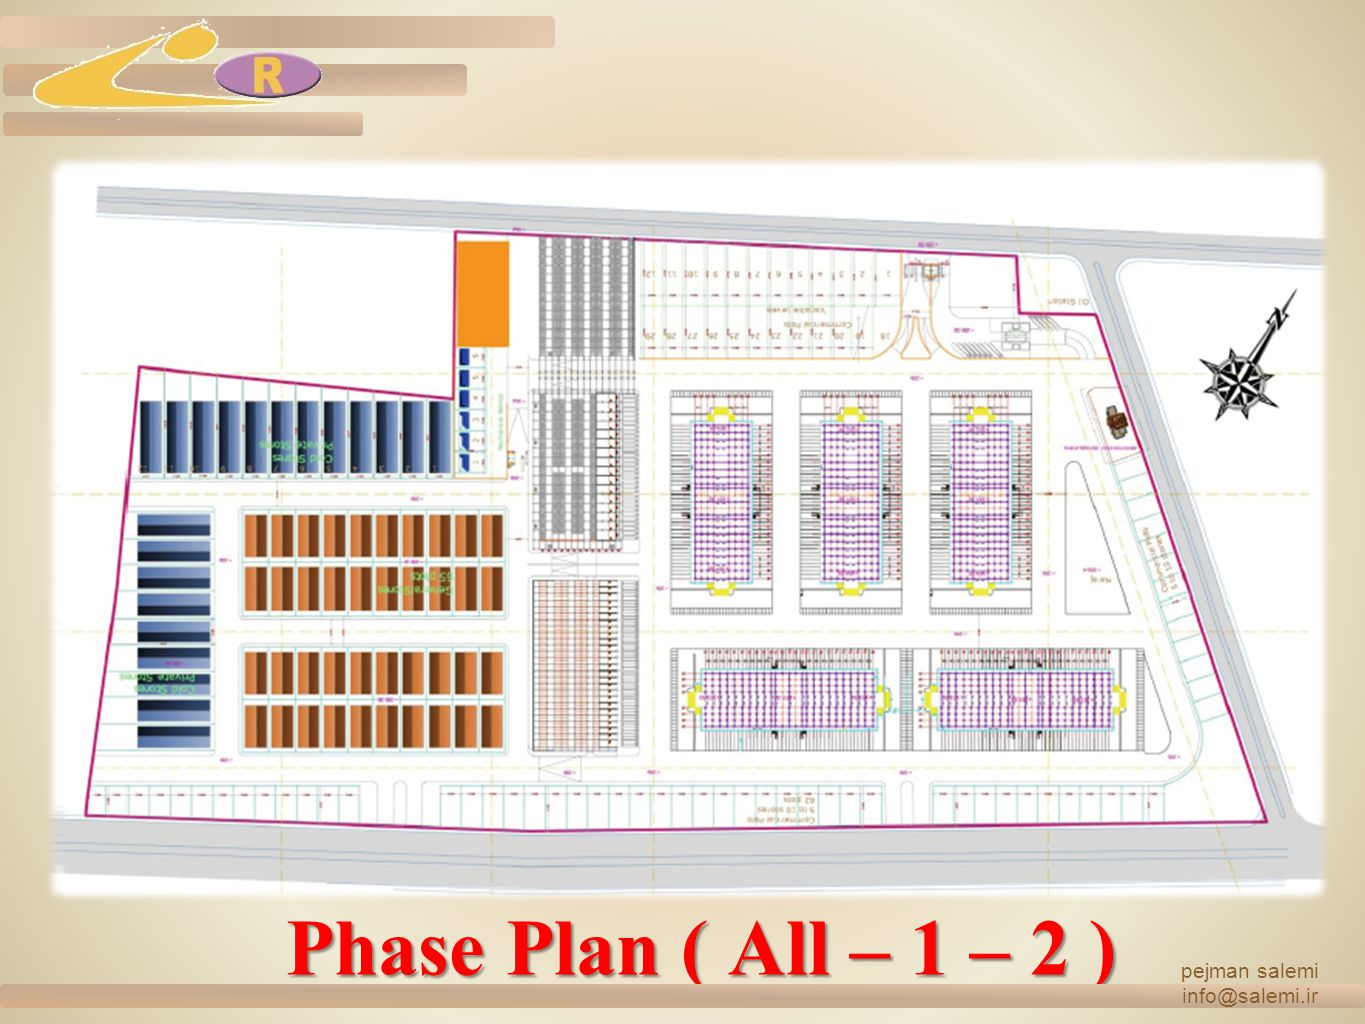 Phase Plan ( All – 1 – 2 ) pejman salemi info@salemi.ir